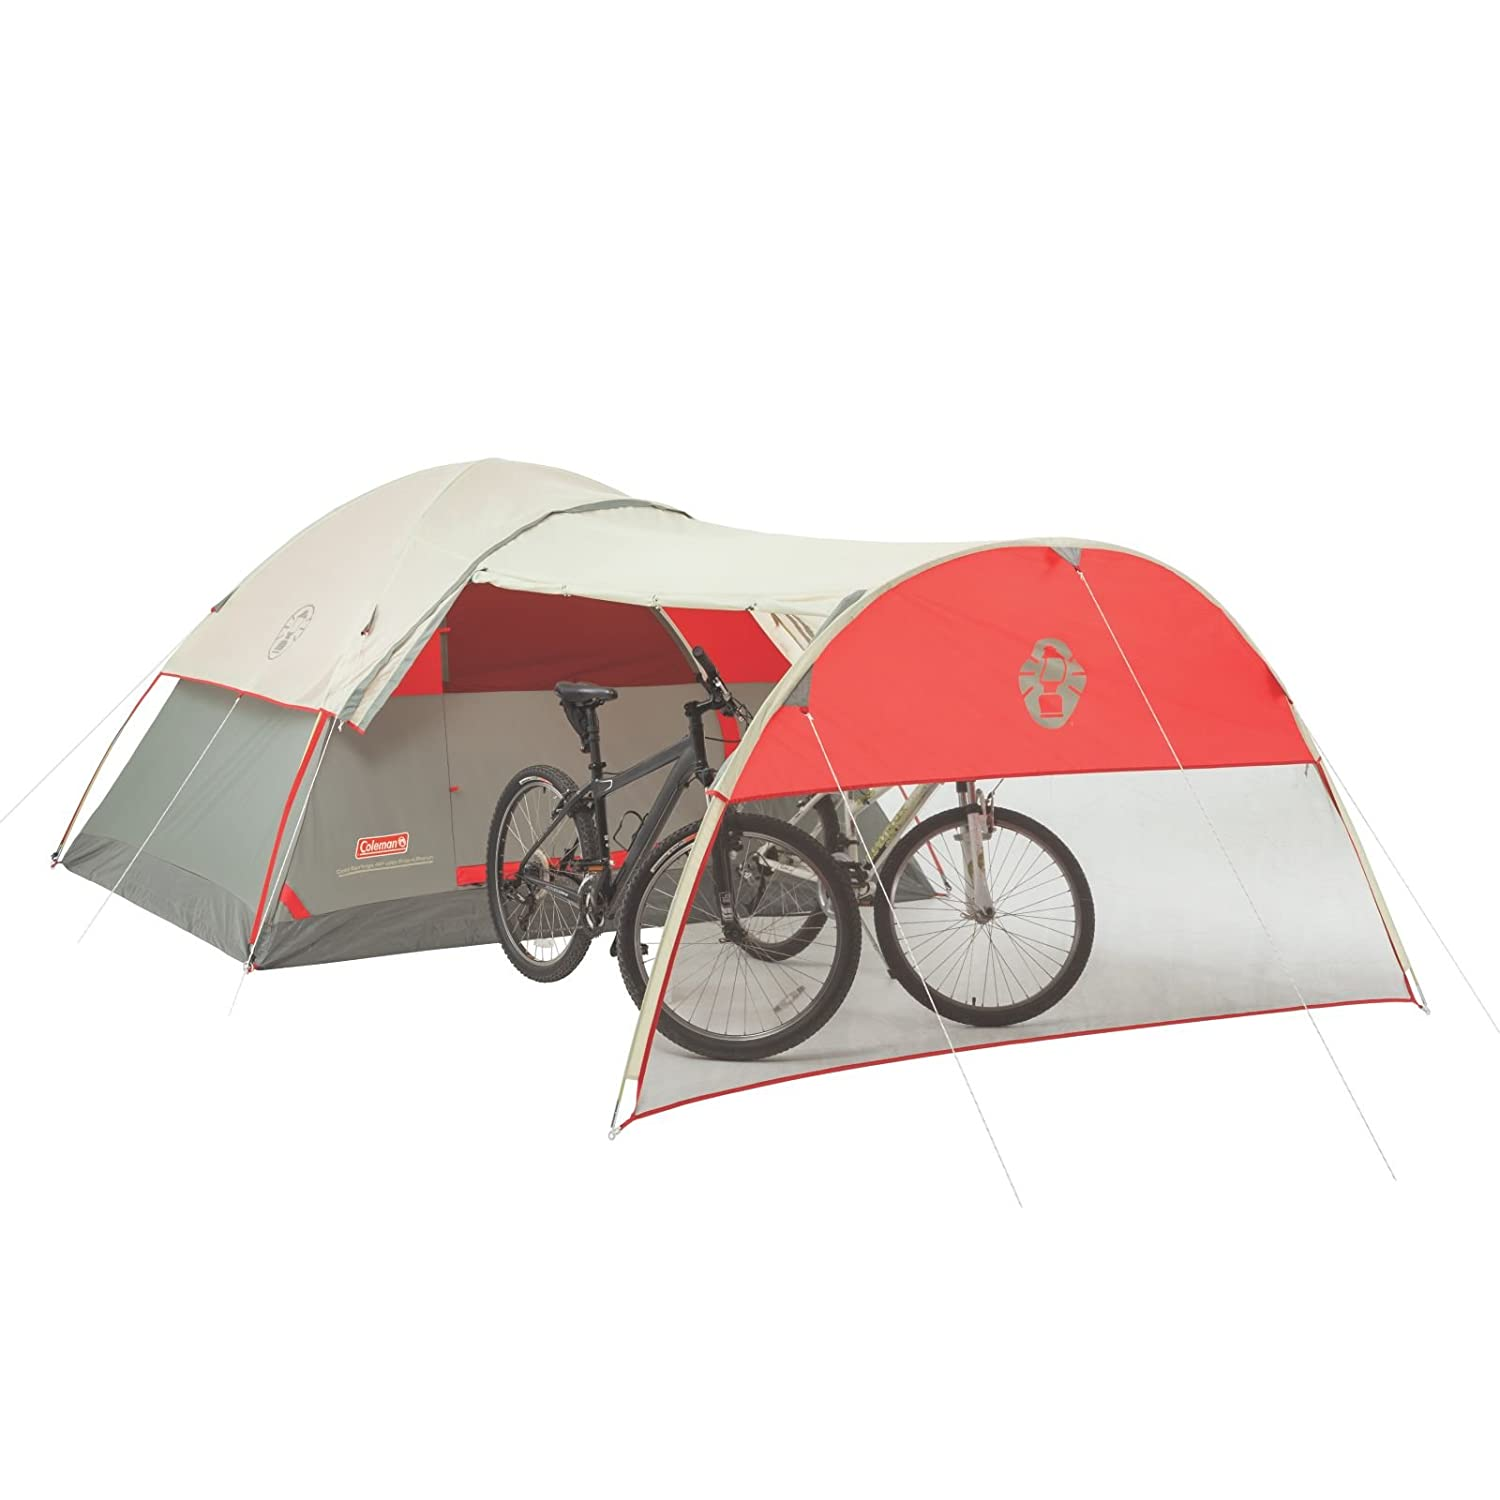 Amazon.com  Coleman Cold Springs 4 Person with Front Porch Dome Tent  Sports u0026 Outdoors  sc 1 st  Amazon.com & Amazon.com : Coleman Cold Springs 4 Person with Front Porch Dome ...